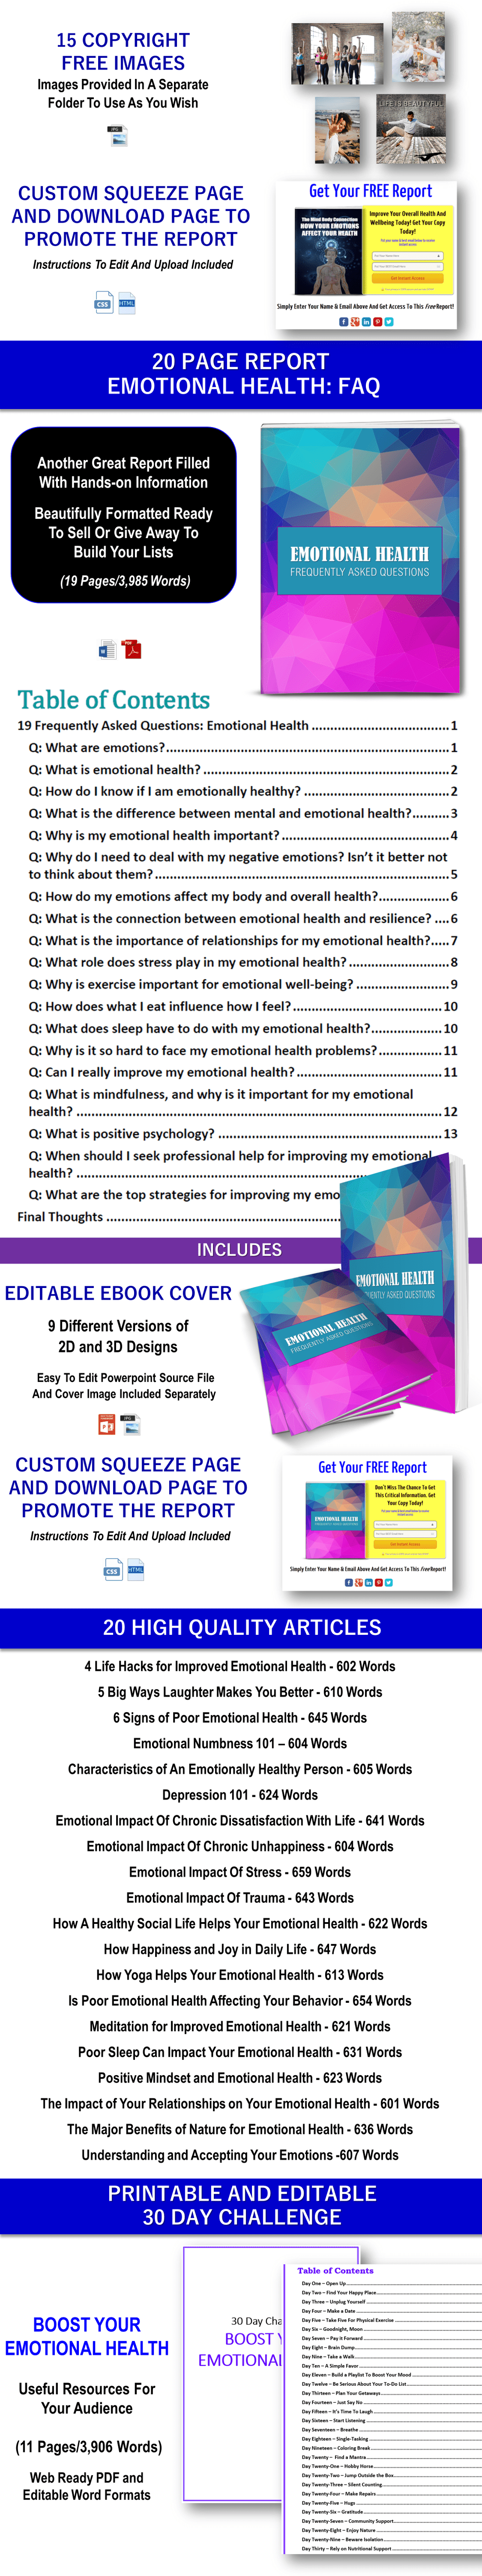 Nurturing Emotional Health Content with PLR Rights